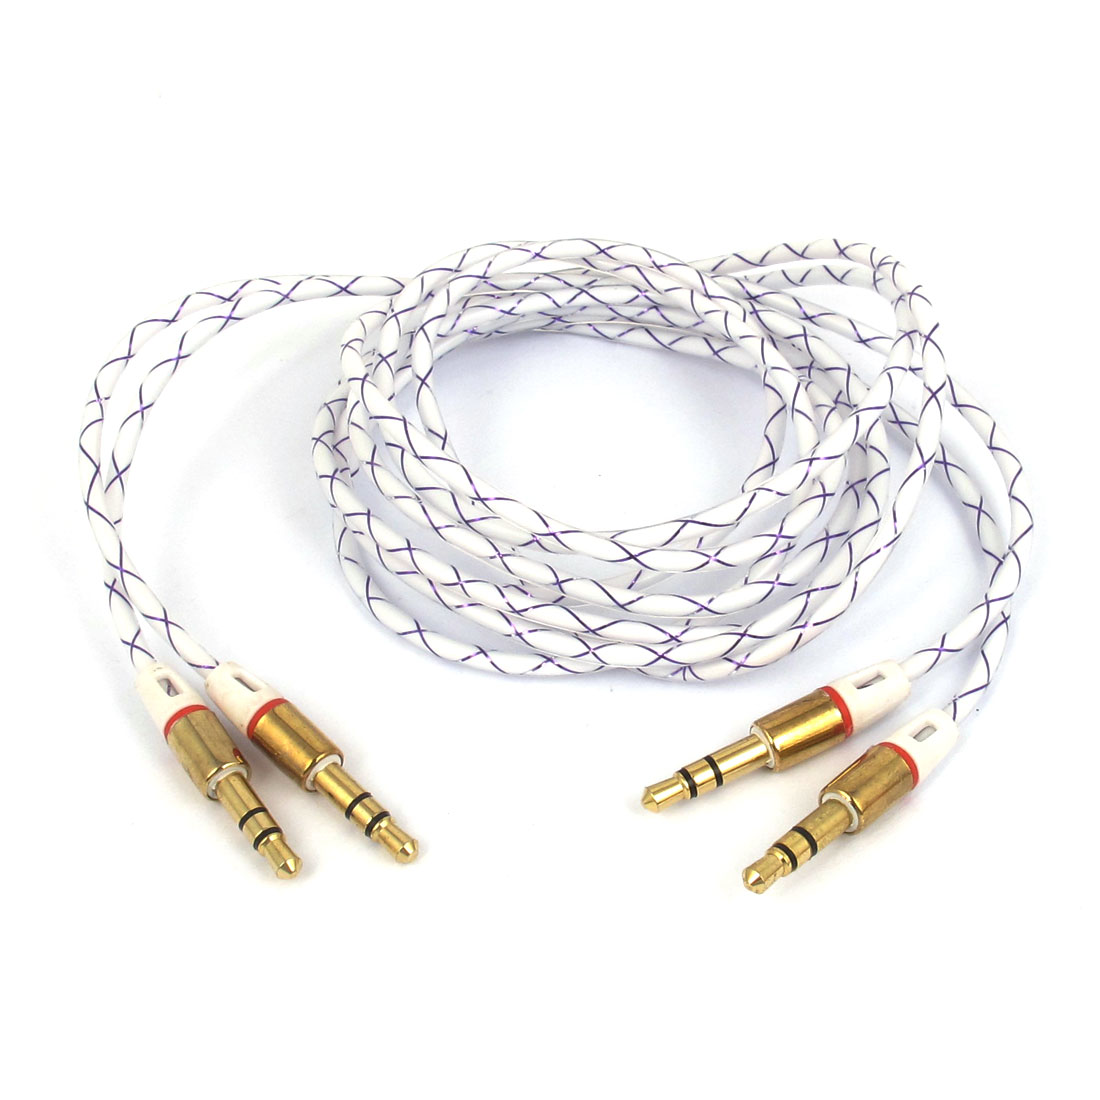 2pcs 3.3Ft Long 3.5mm Male to 3.5mm Male Audio Round Extension Cable Cord Purple Clear